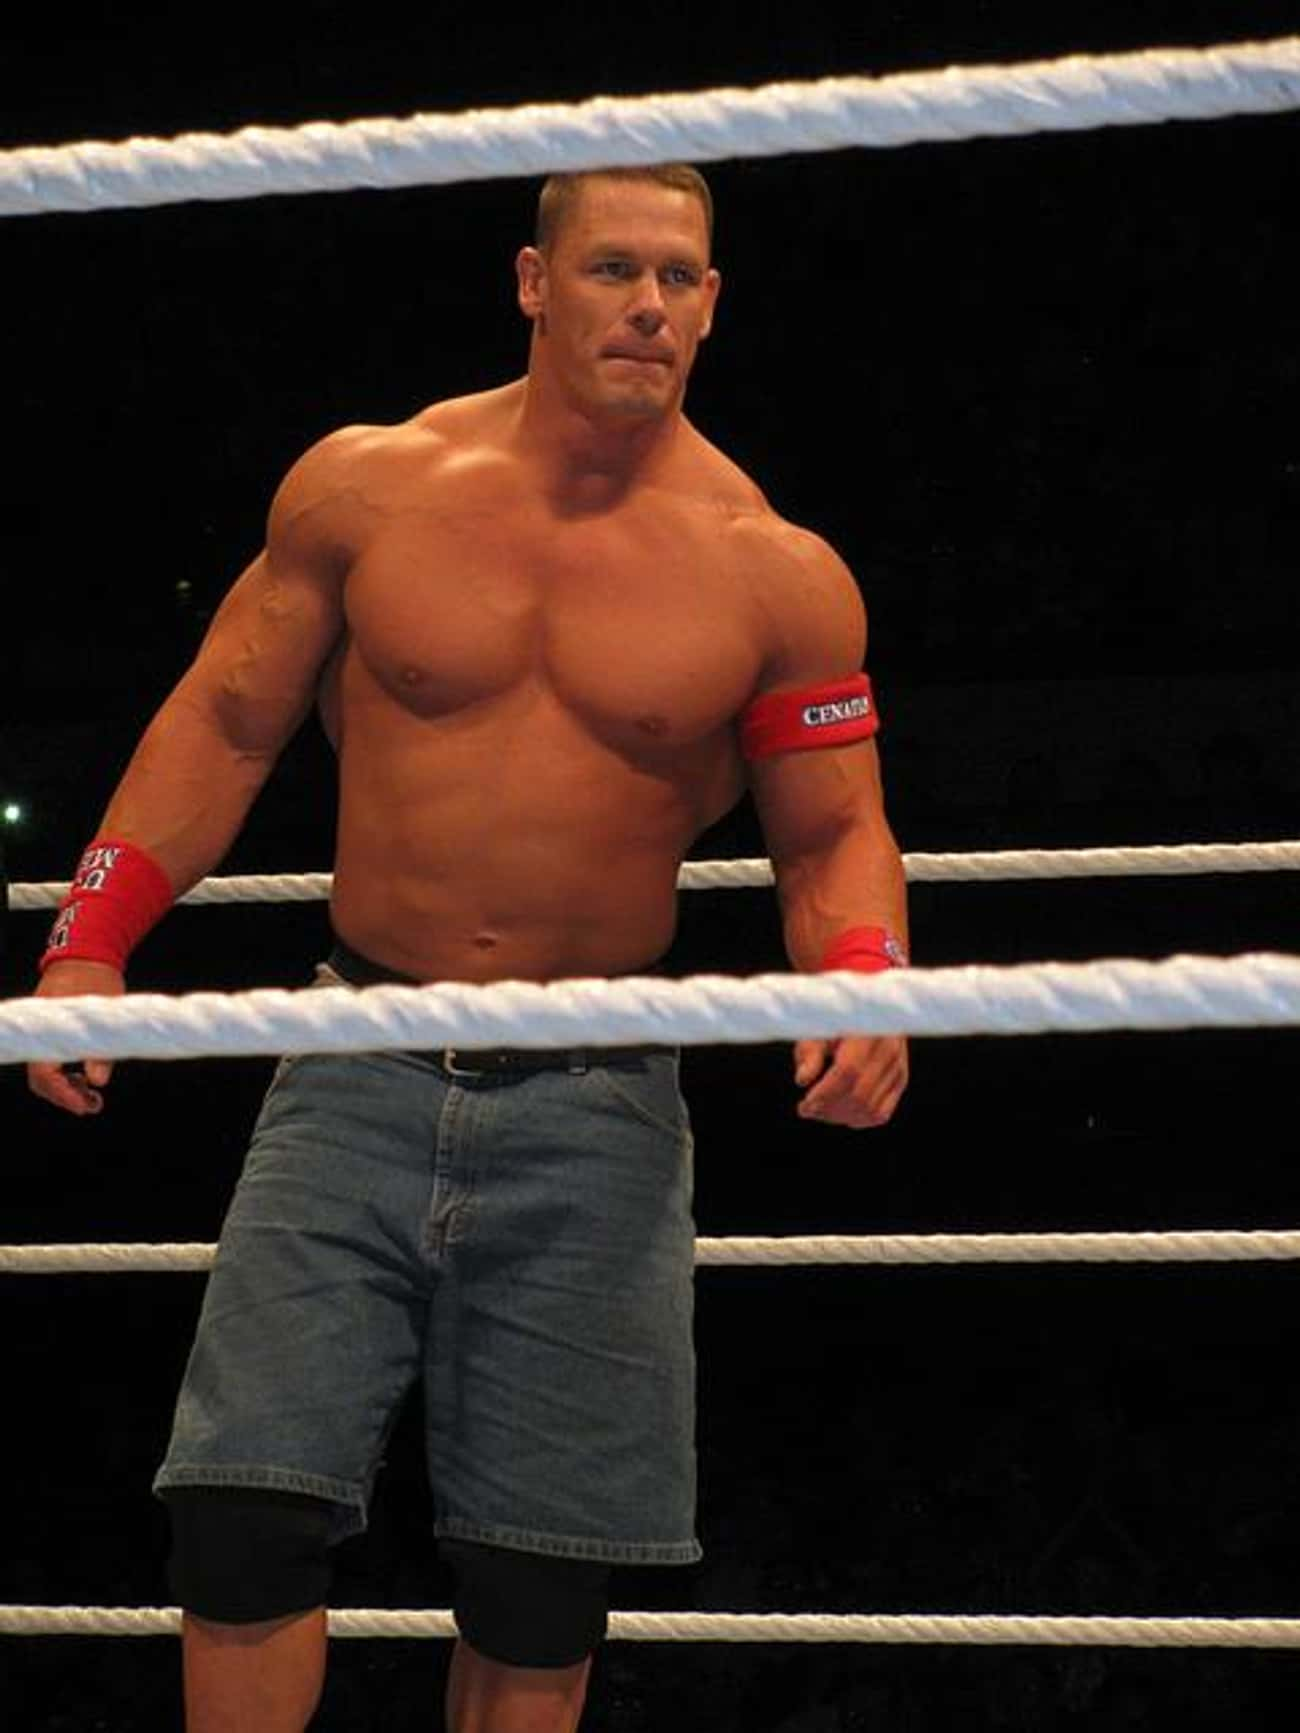 John Cena is listed (or ranked) 1 on the list The Top Five WWE Superstars Who Won The Highest Number of Titles